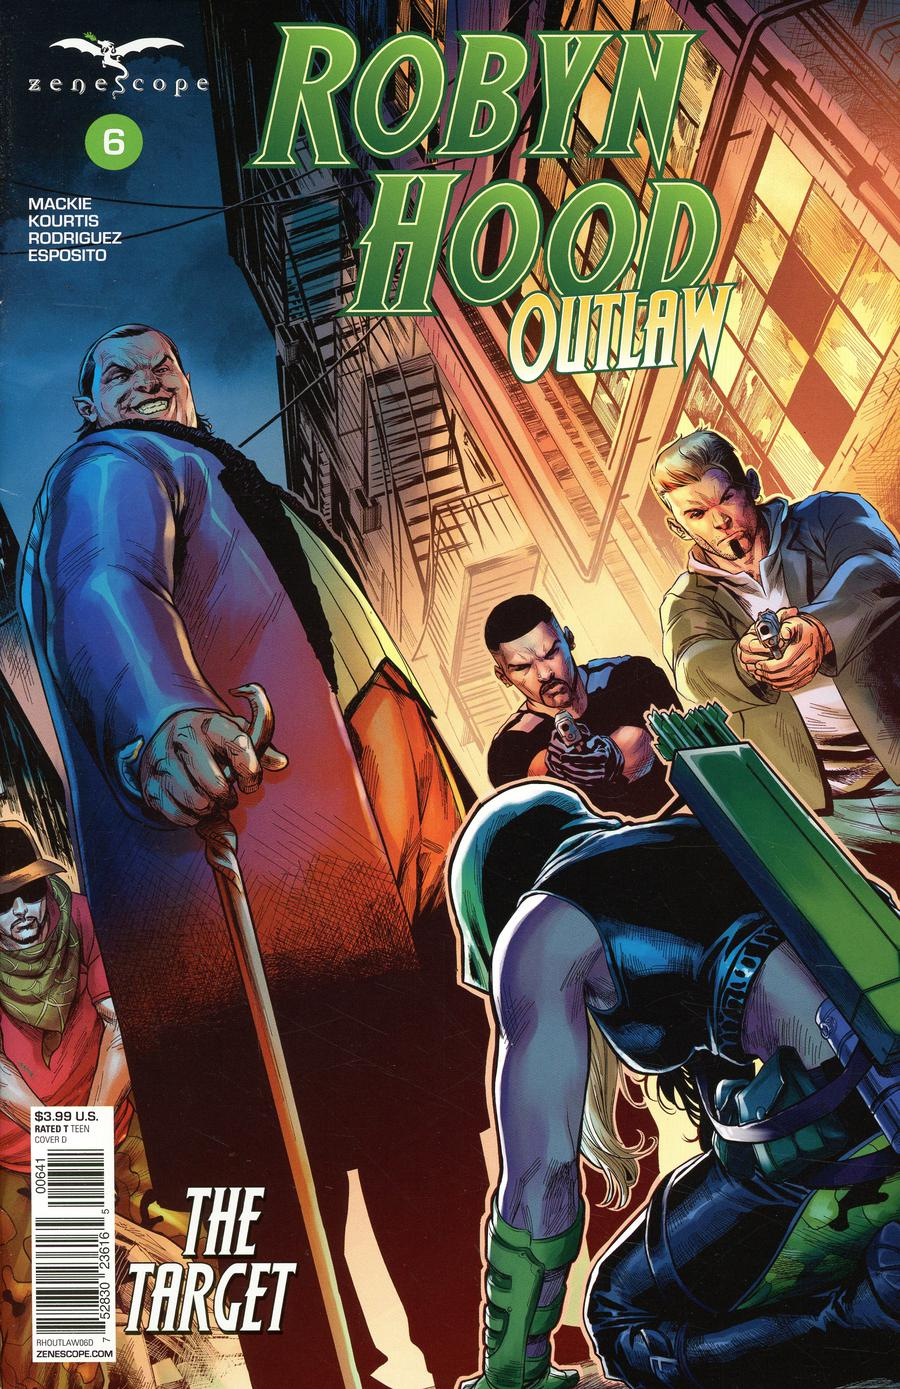 Grimm Fairy Tales Presents Robyn Hood Outlaw #6 Cover D Martin Coccolo